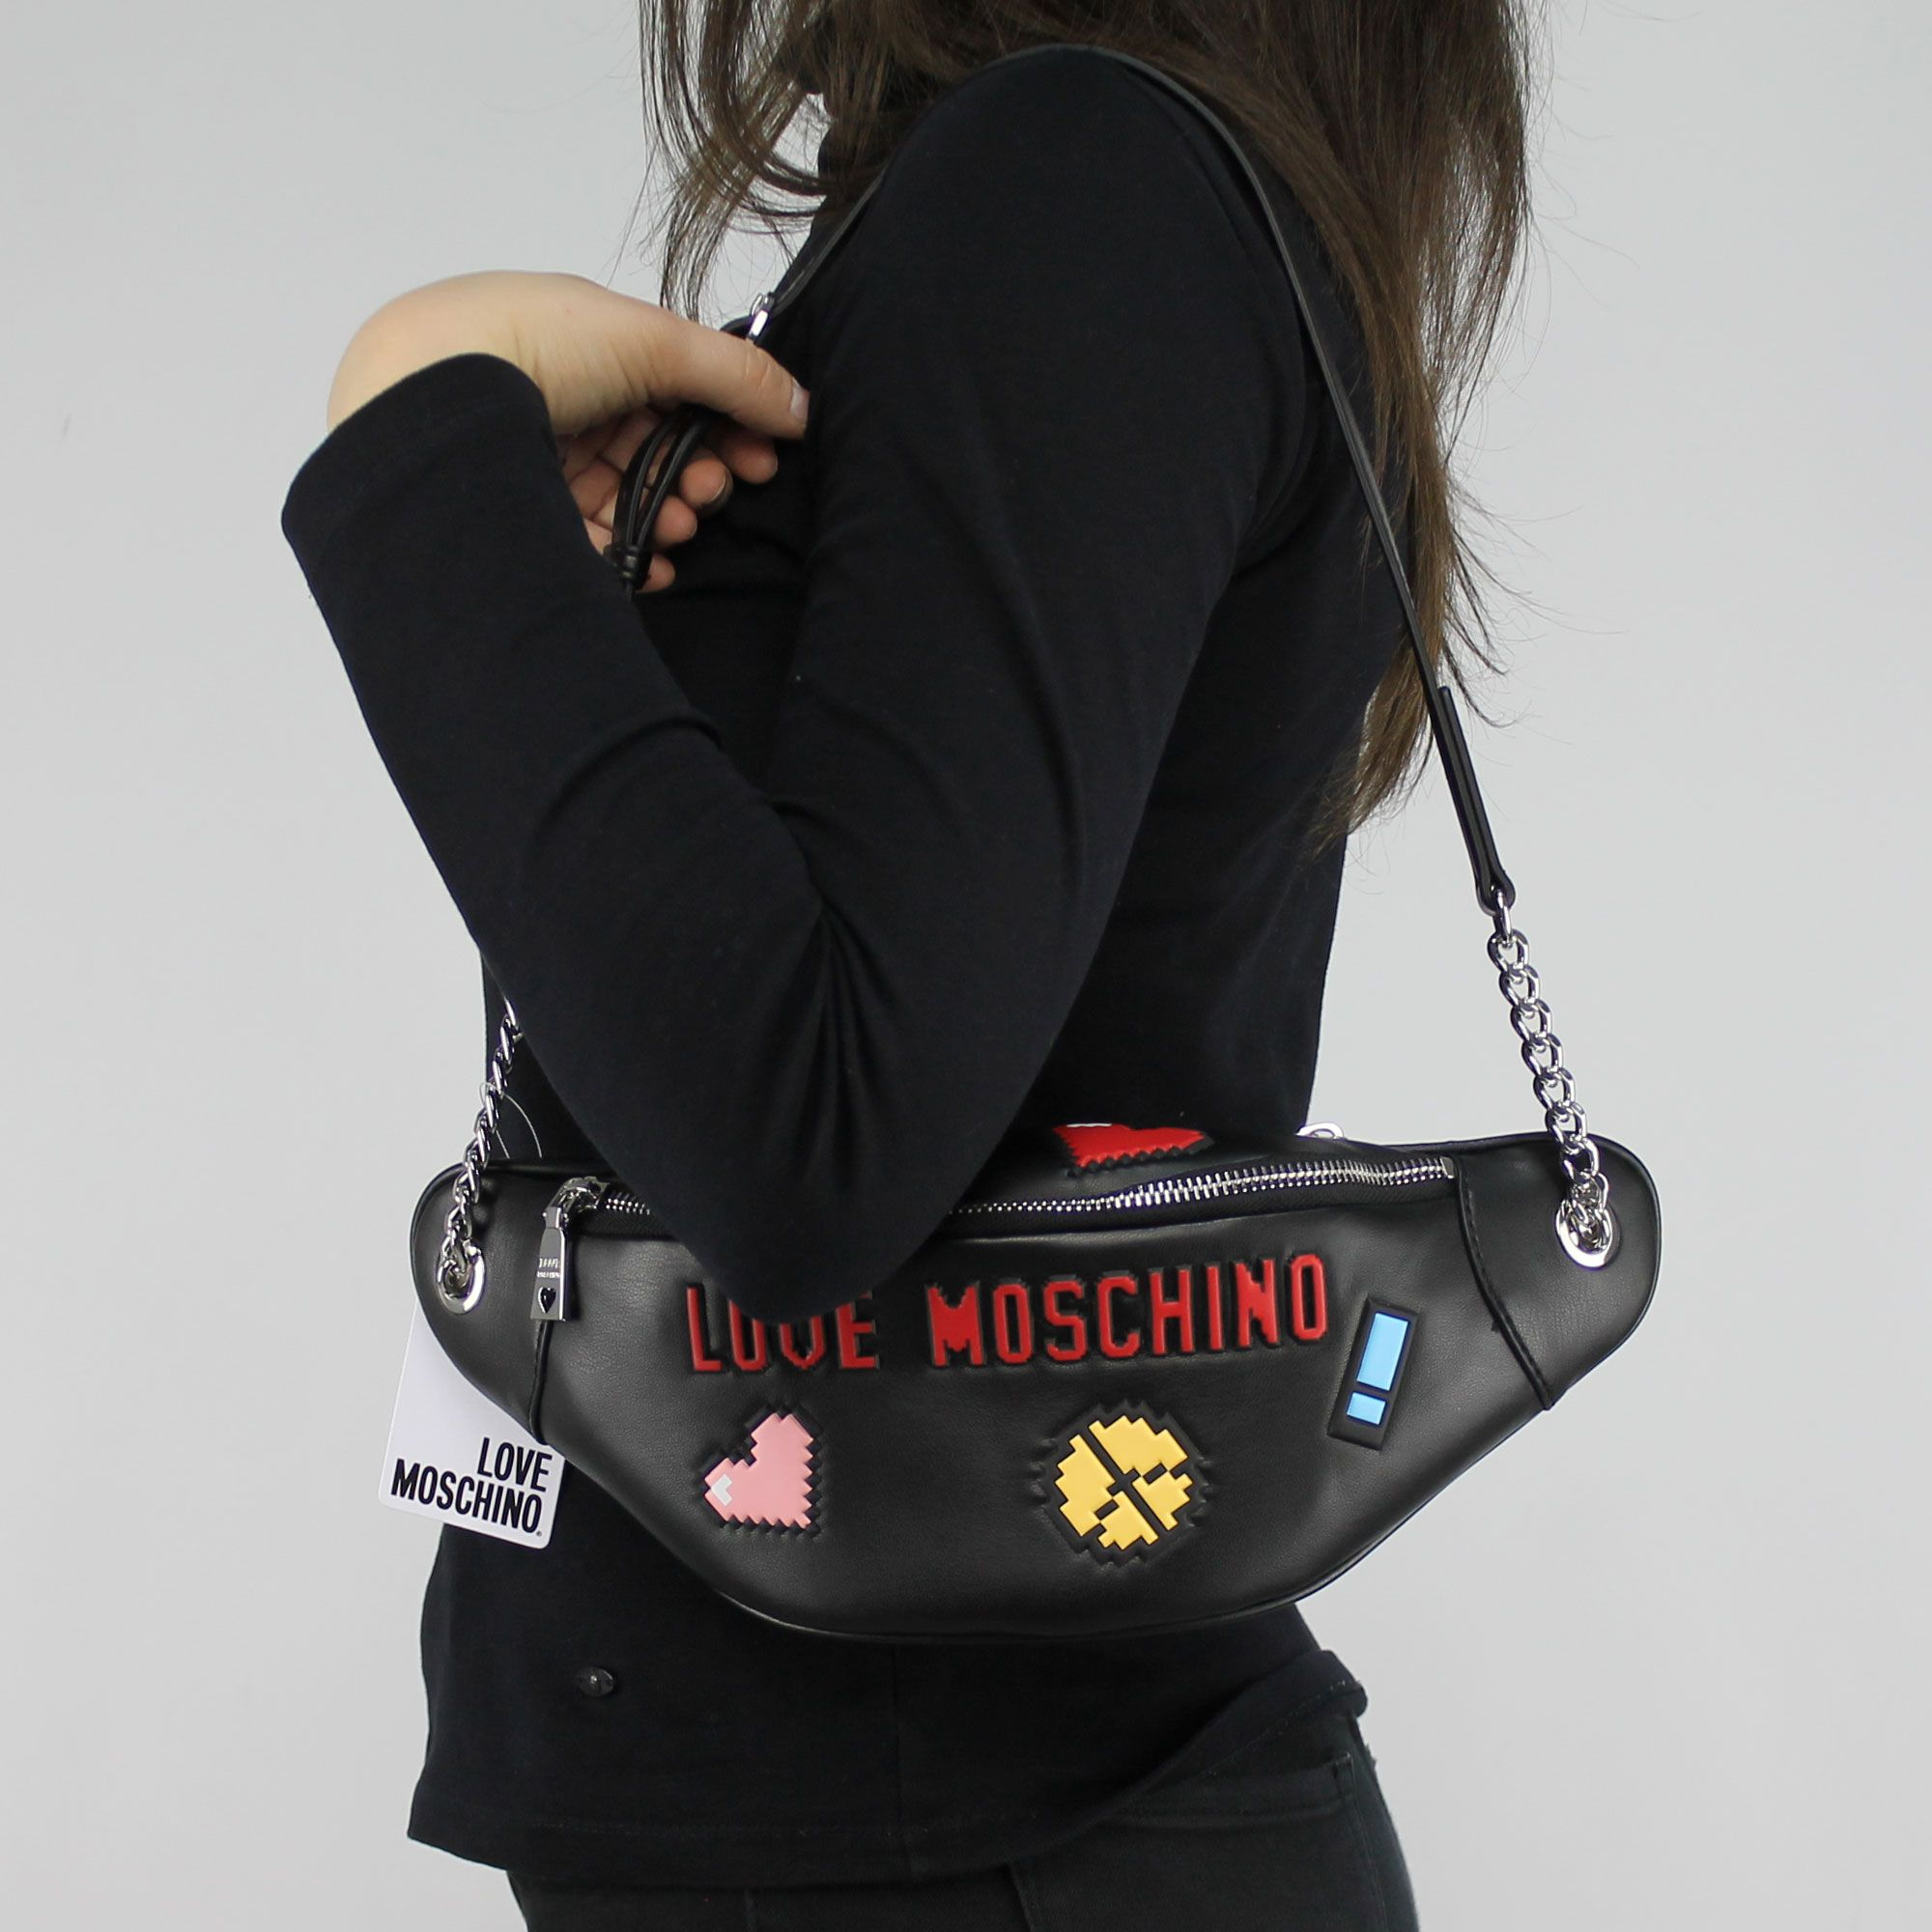 tasche bauchtasche love moschino schwarz logo game jc4072pp15lh0000 in more est store. Black Bedroom Furniture Sets. Home Design Ideas